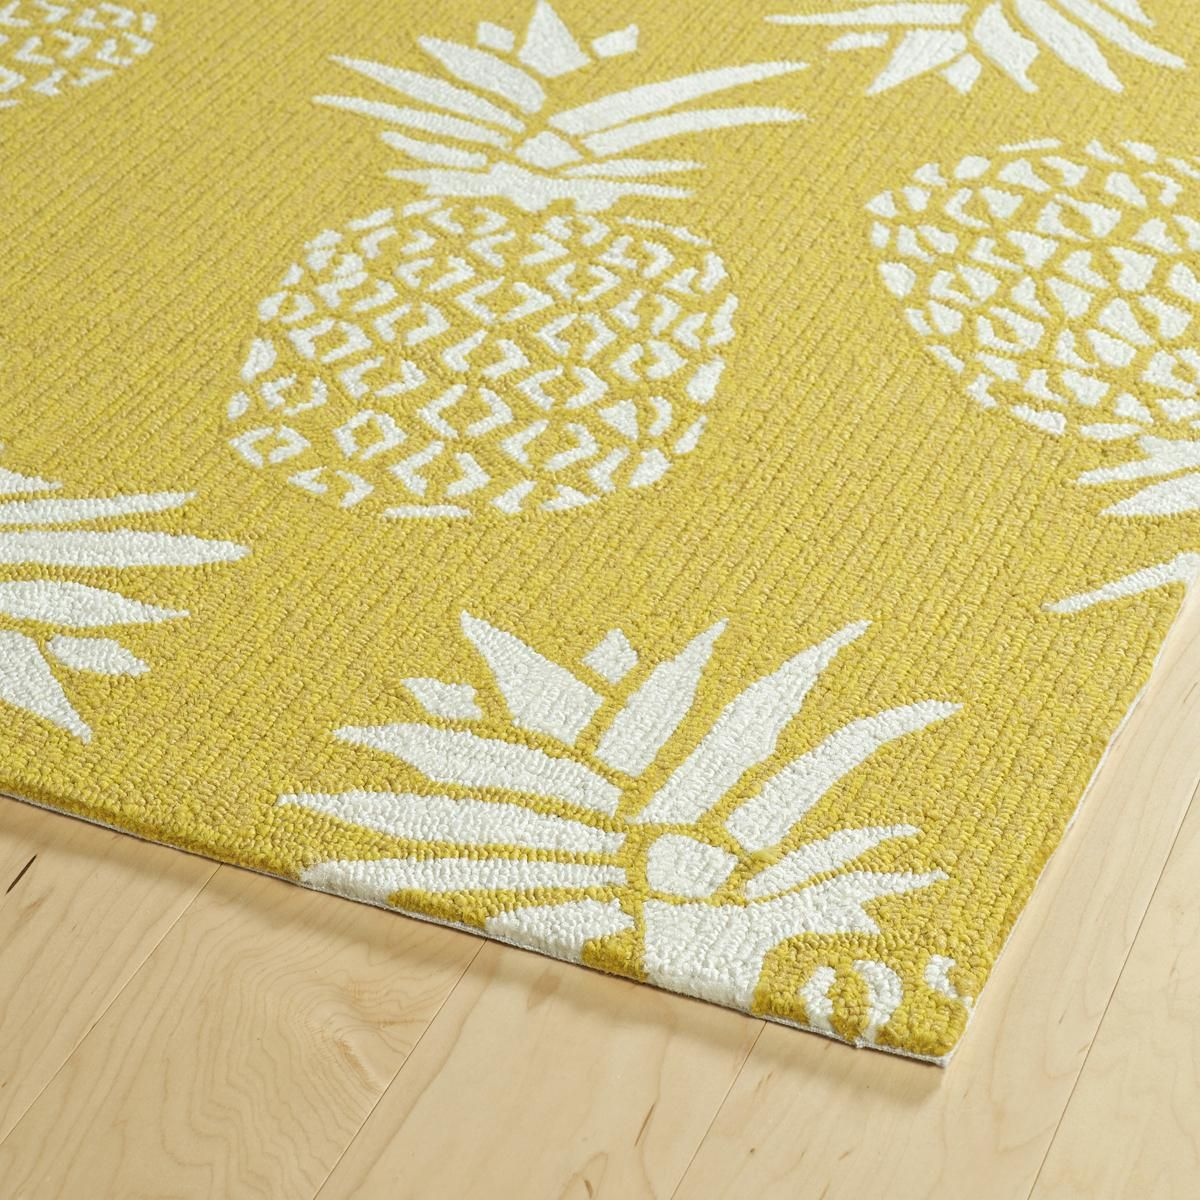 Spunky Pineapple Indoor Outdoor Rug Pineapple Kitchen Decor Retro Decor Kitchen Decor